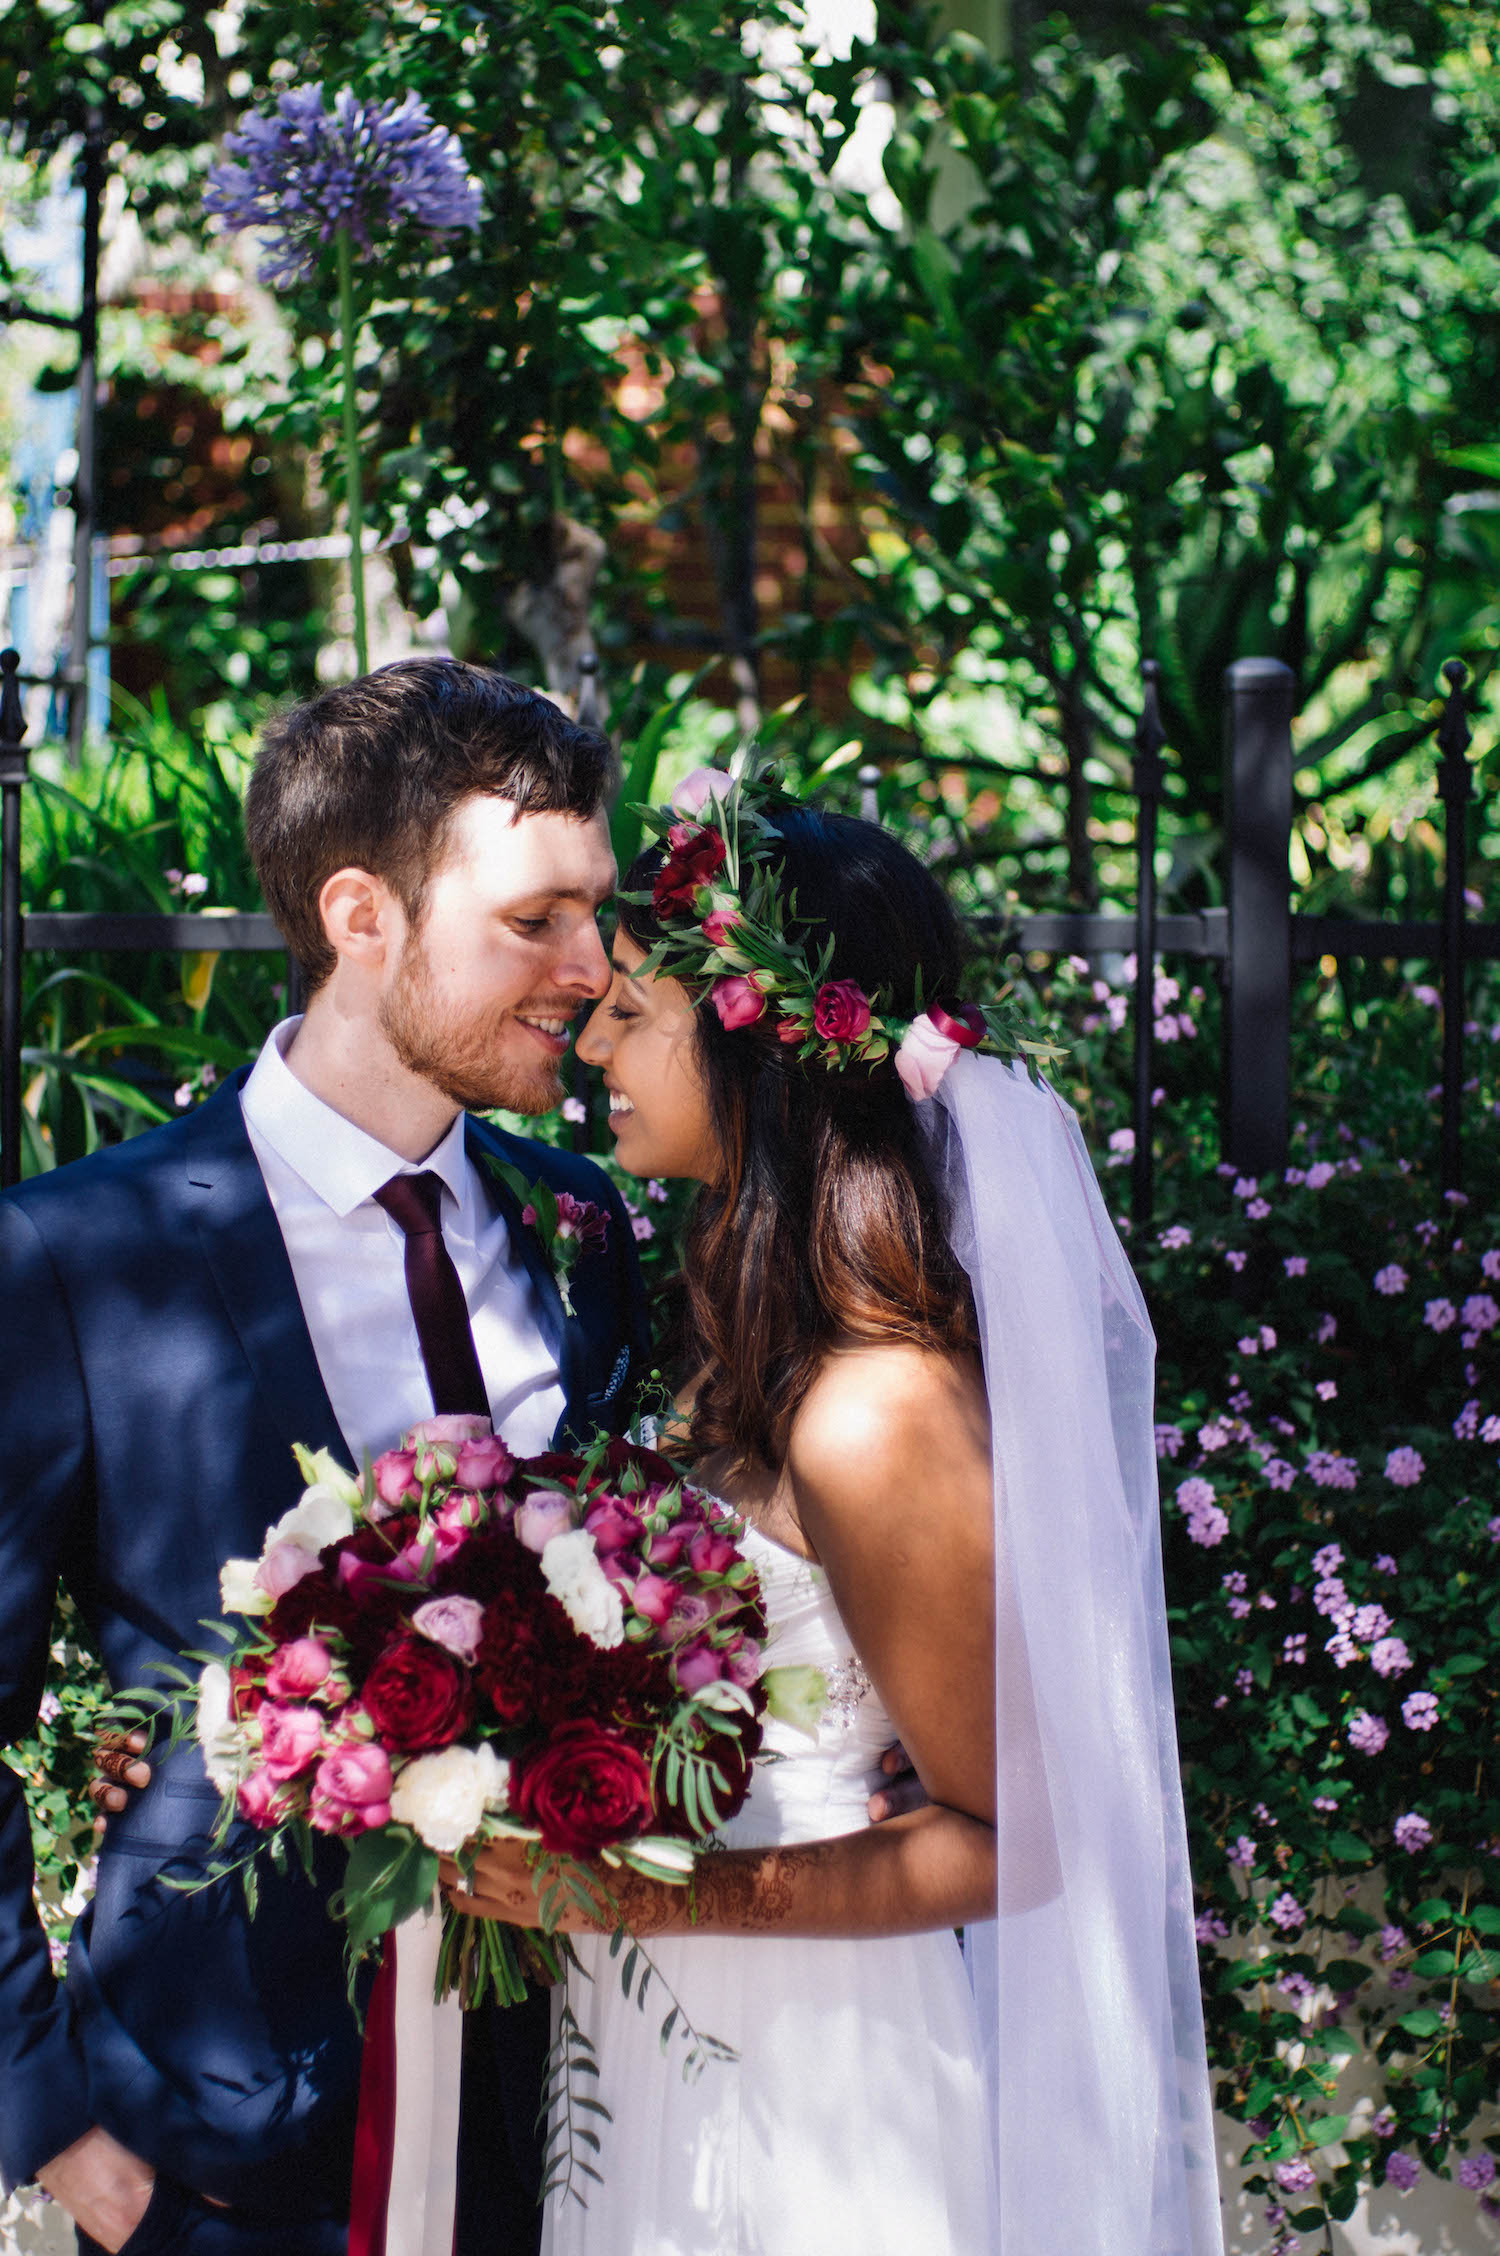 Jibb & Tripthi share a moment on a Subiaco street in dappled light taken by Rhianna May Destination Wedding Photographer